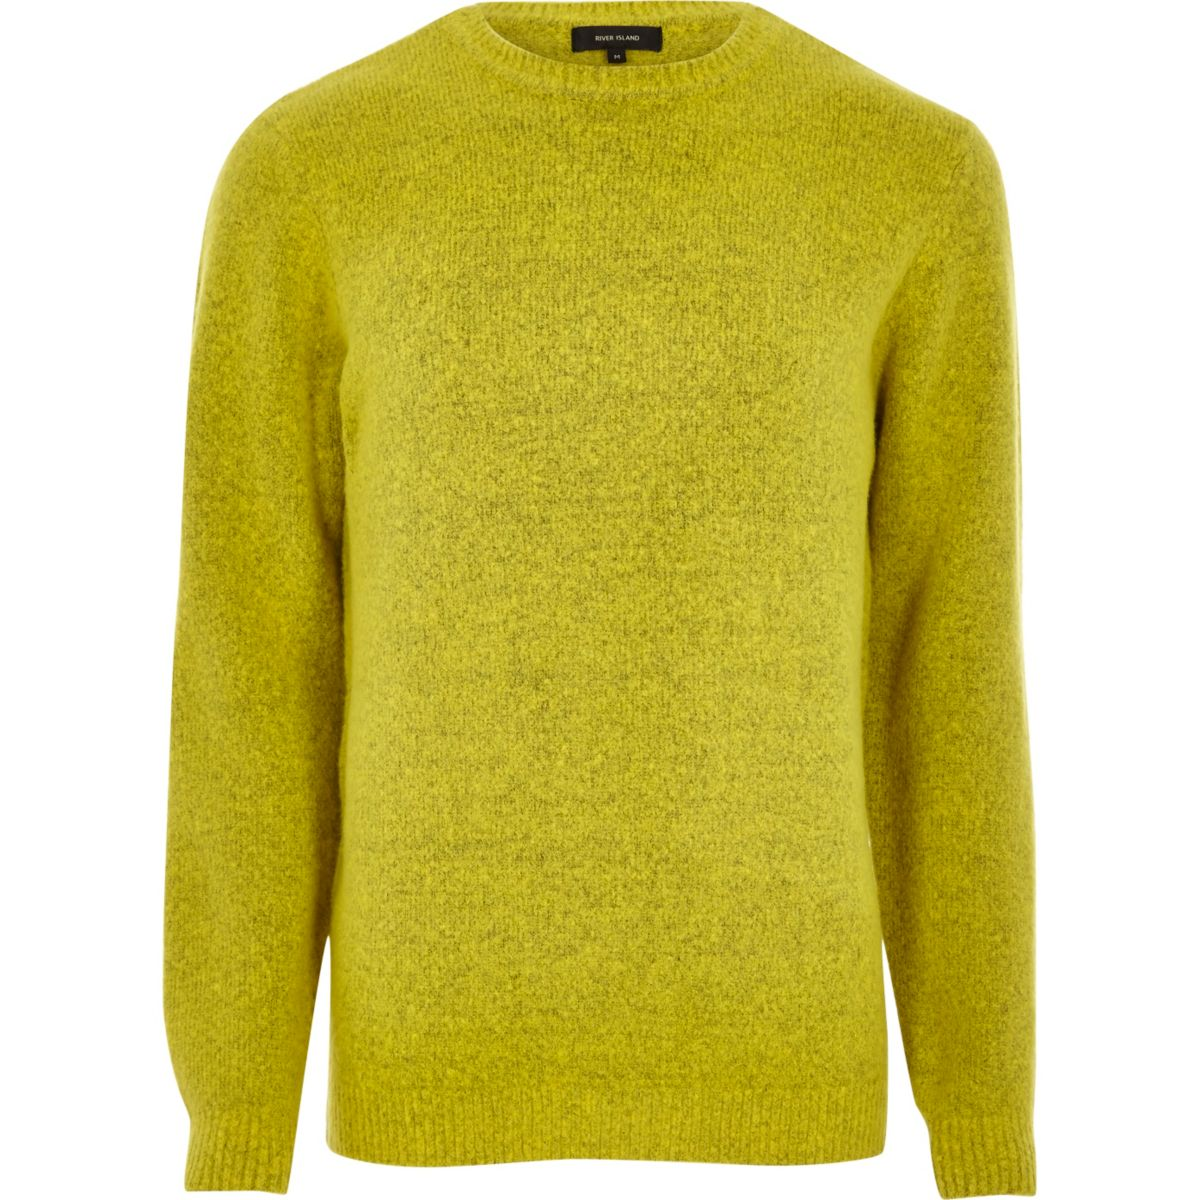 Lime green soft knit crew neck sweater